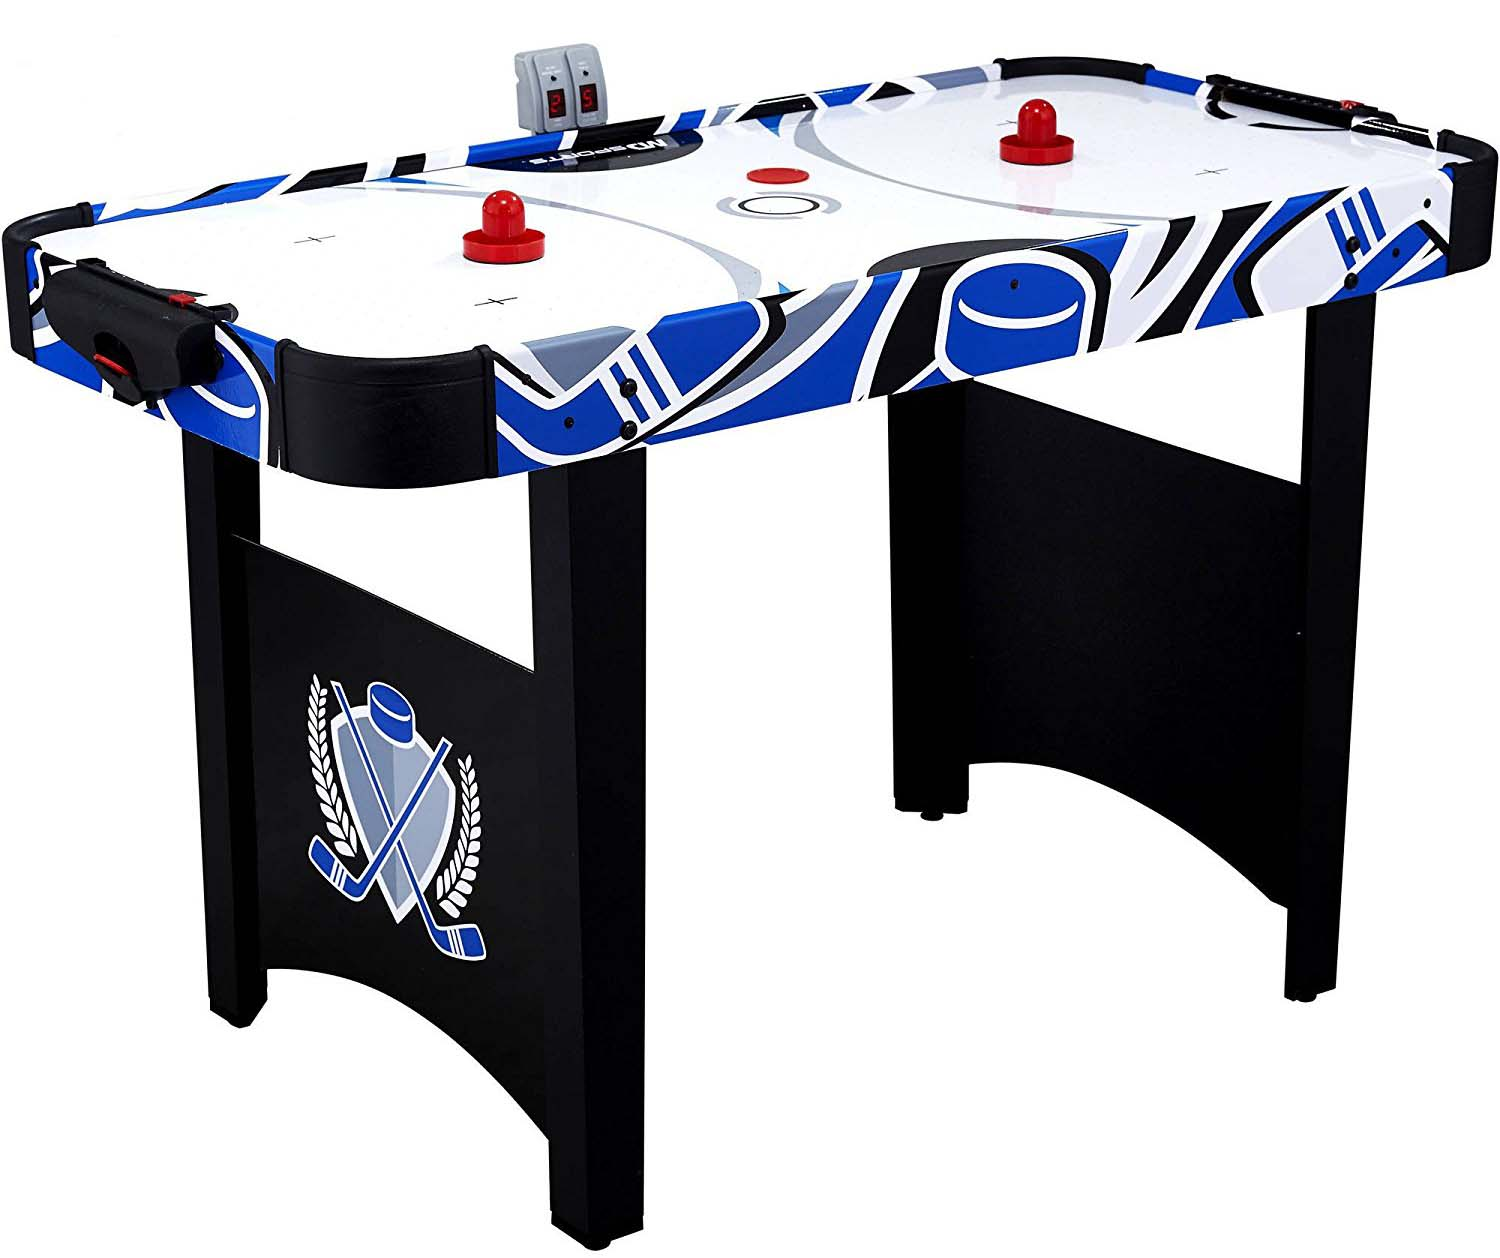 MD Sports Mind Blowing Fun And Easy To Play For Kids Air Powered Hockey  Table